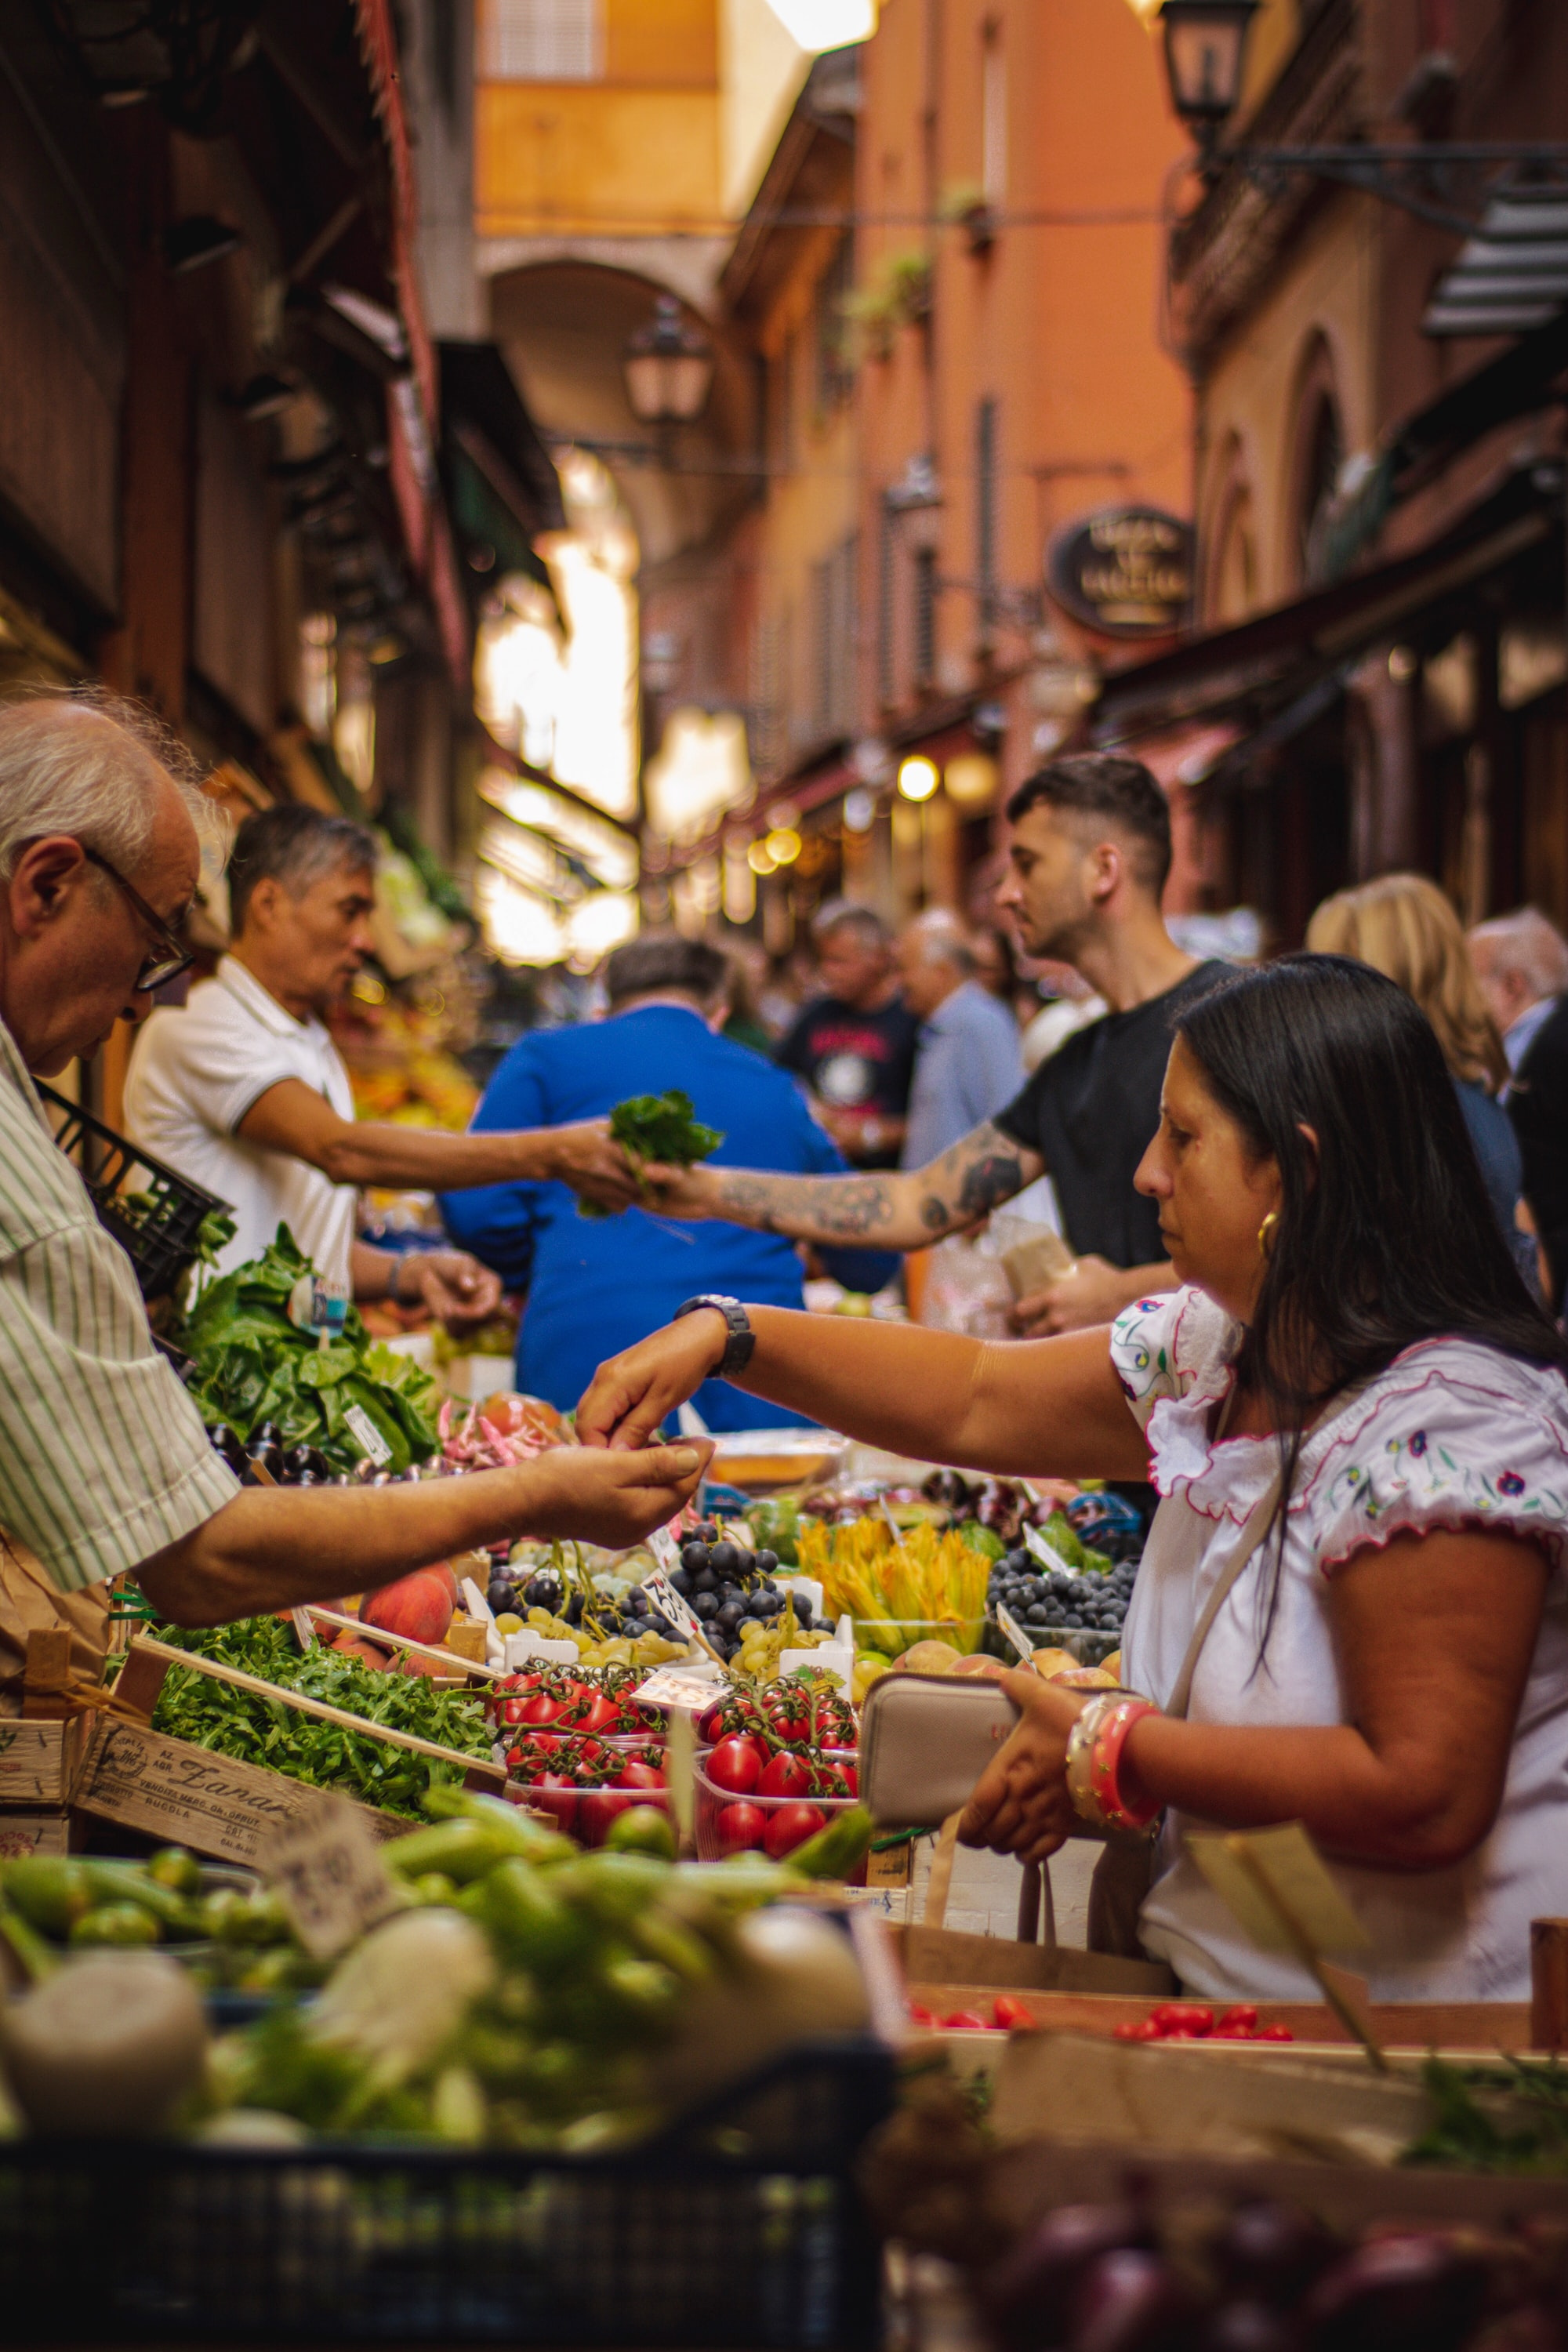 How To Make Better Food Choices for People and the Environment